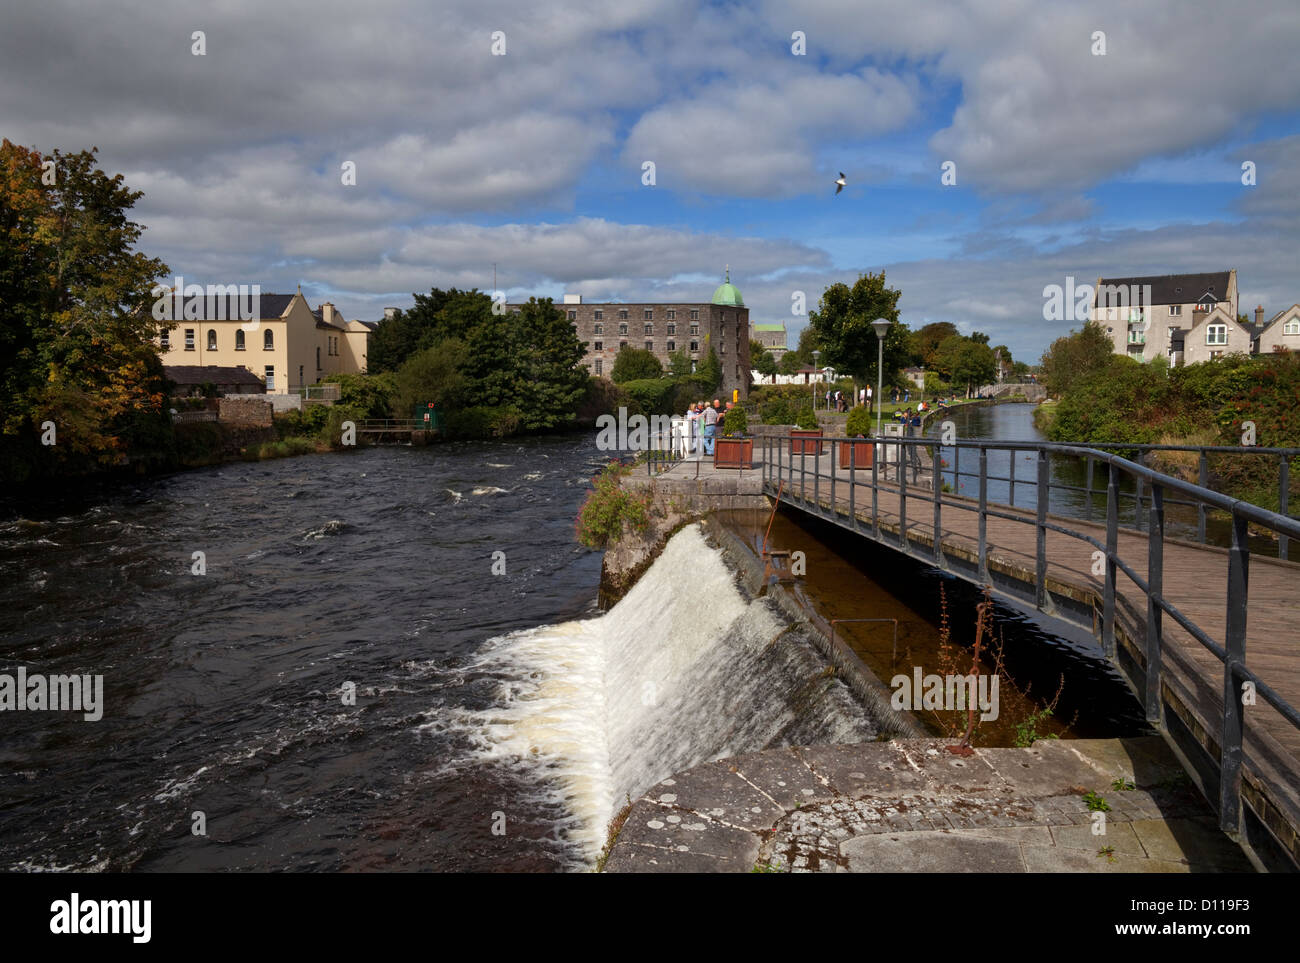 Salmon Leap, Weir on the Corrib Walk beside the River Corrib, Galway City, Ireland - Stock Image